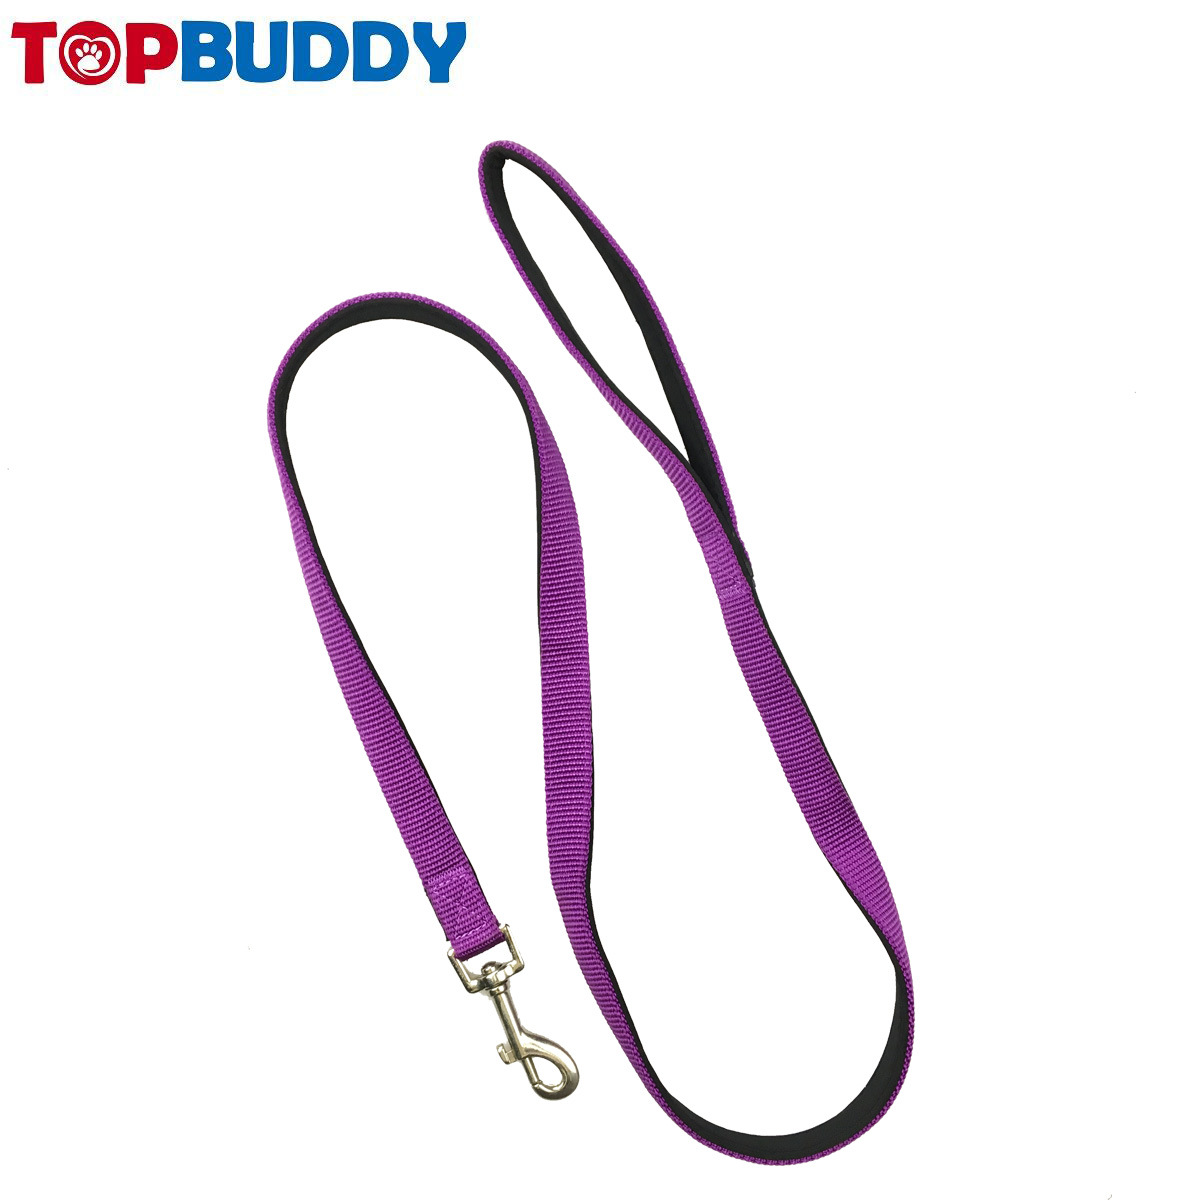 Pet Supplies Nylon Tow Rope High Quality Nylon Dog Hand Holding Rope Dog Useful Product Suspender Strap Traction Belt